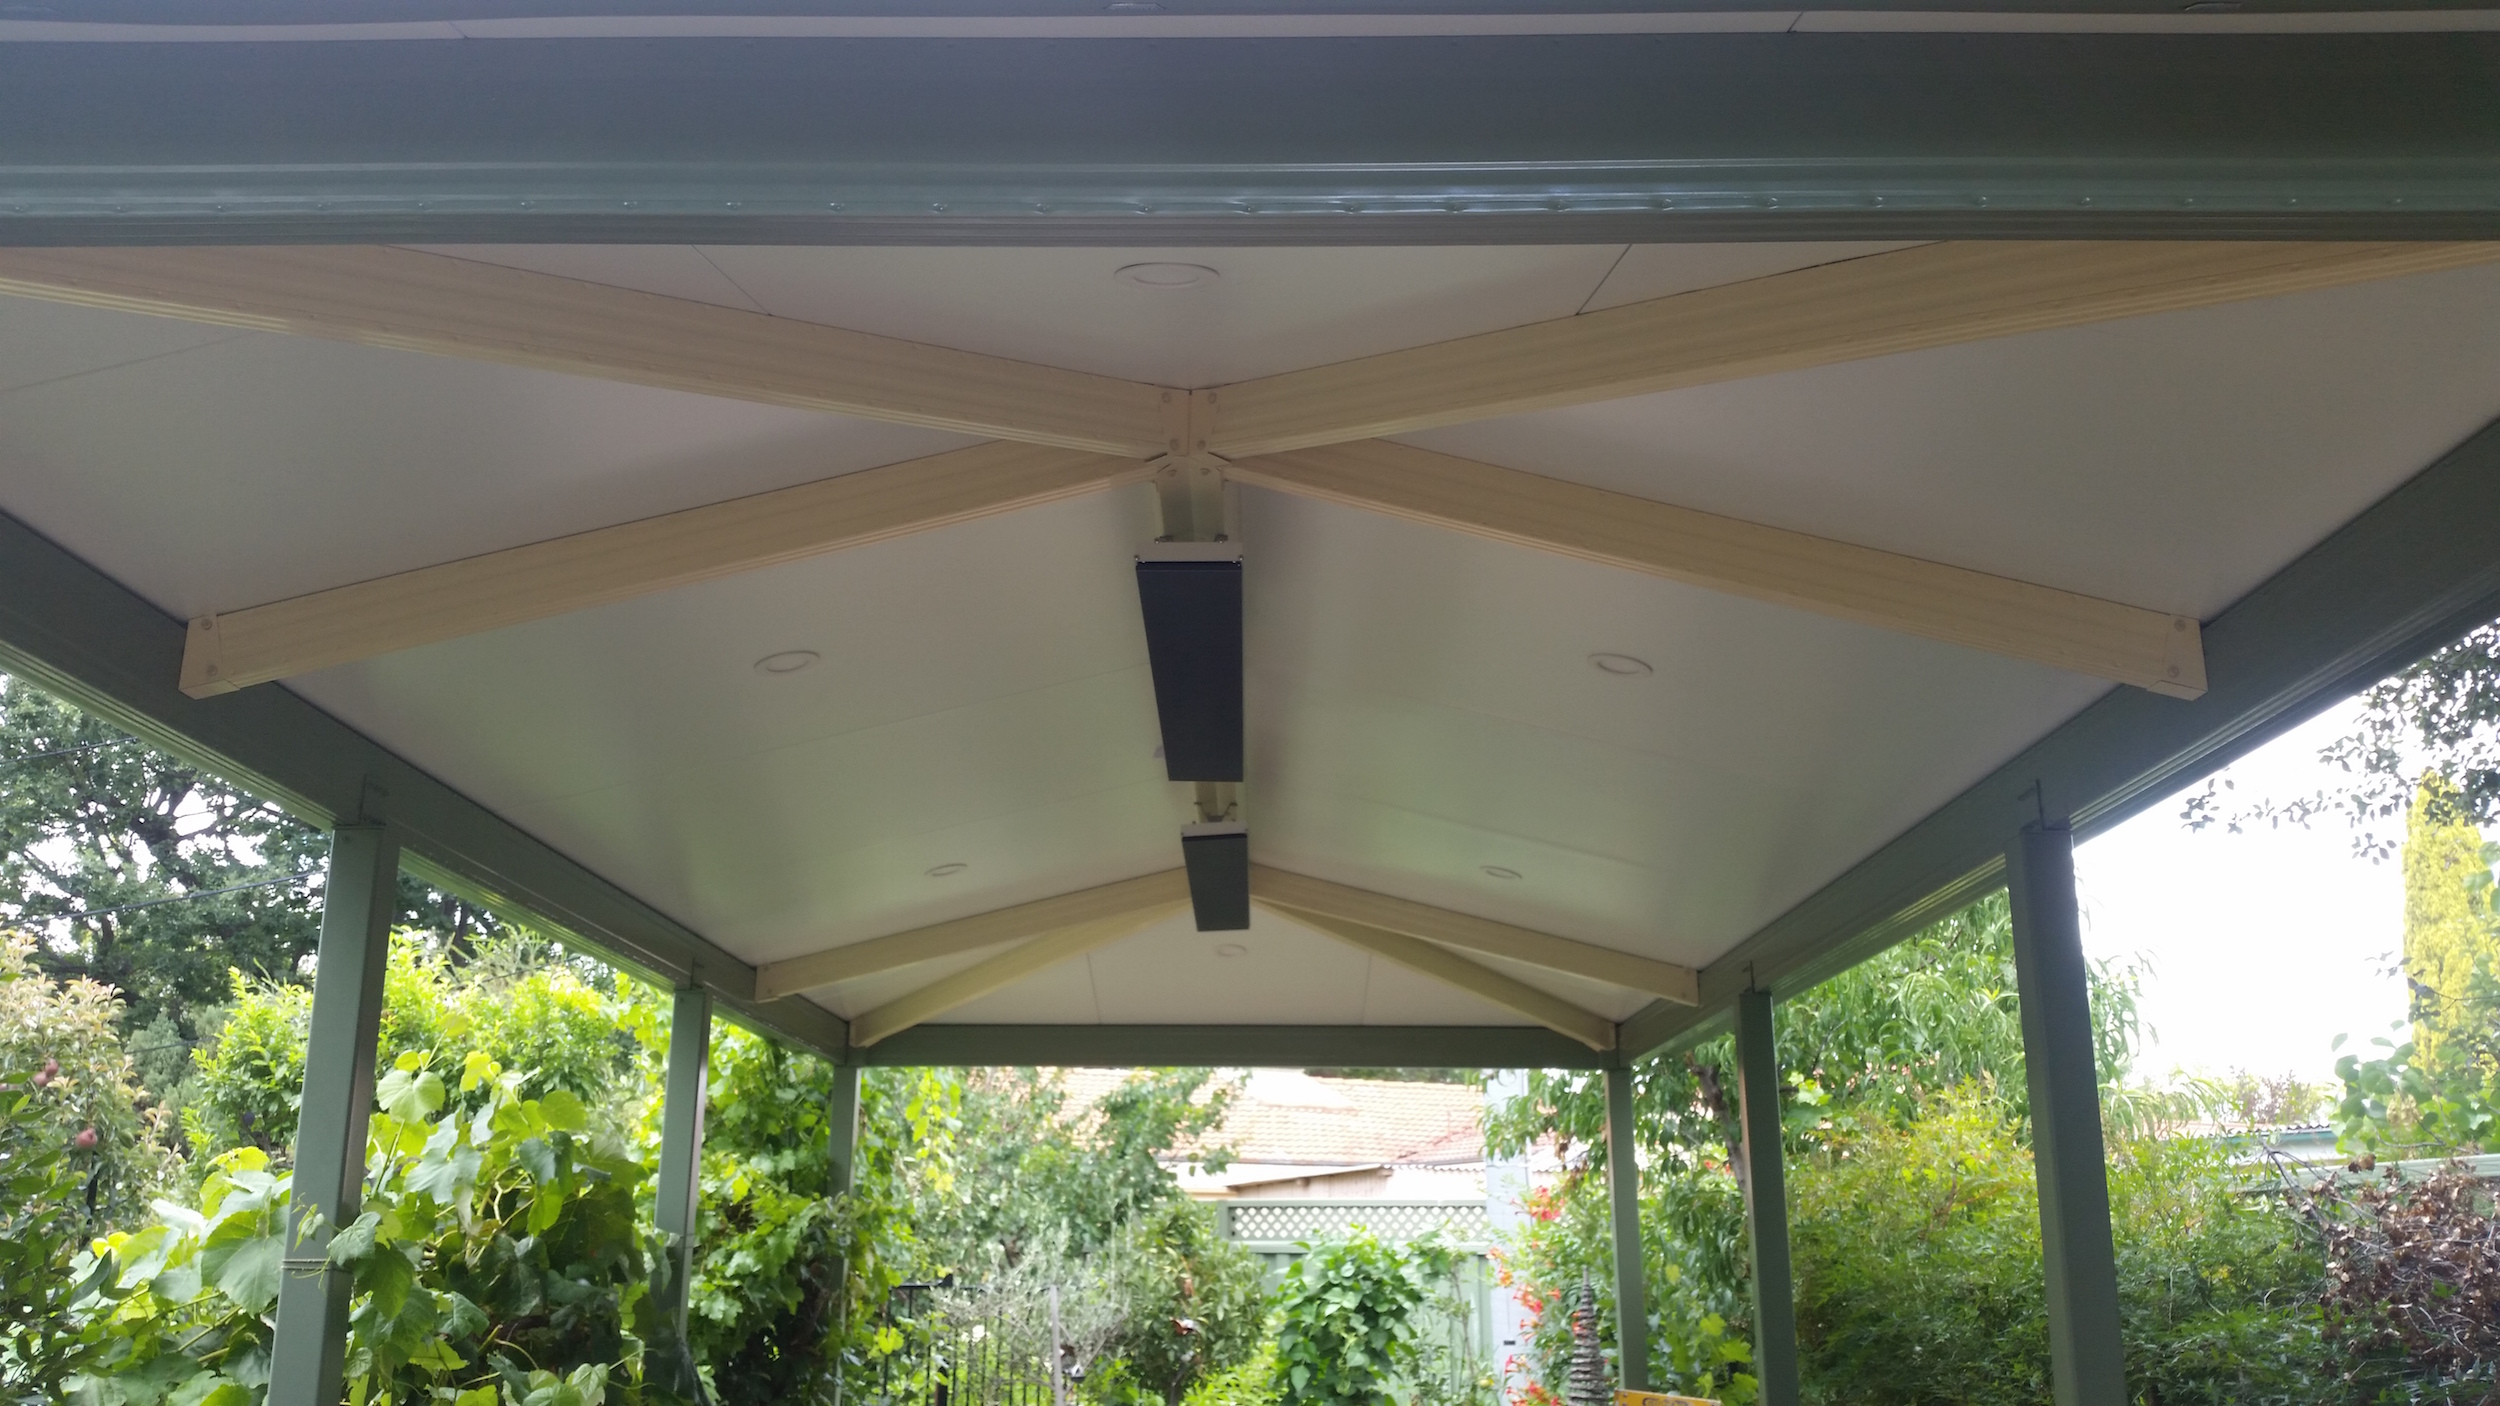 Hipped roof pergola awning